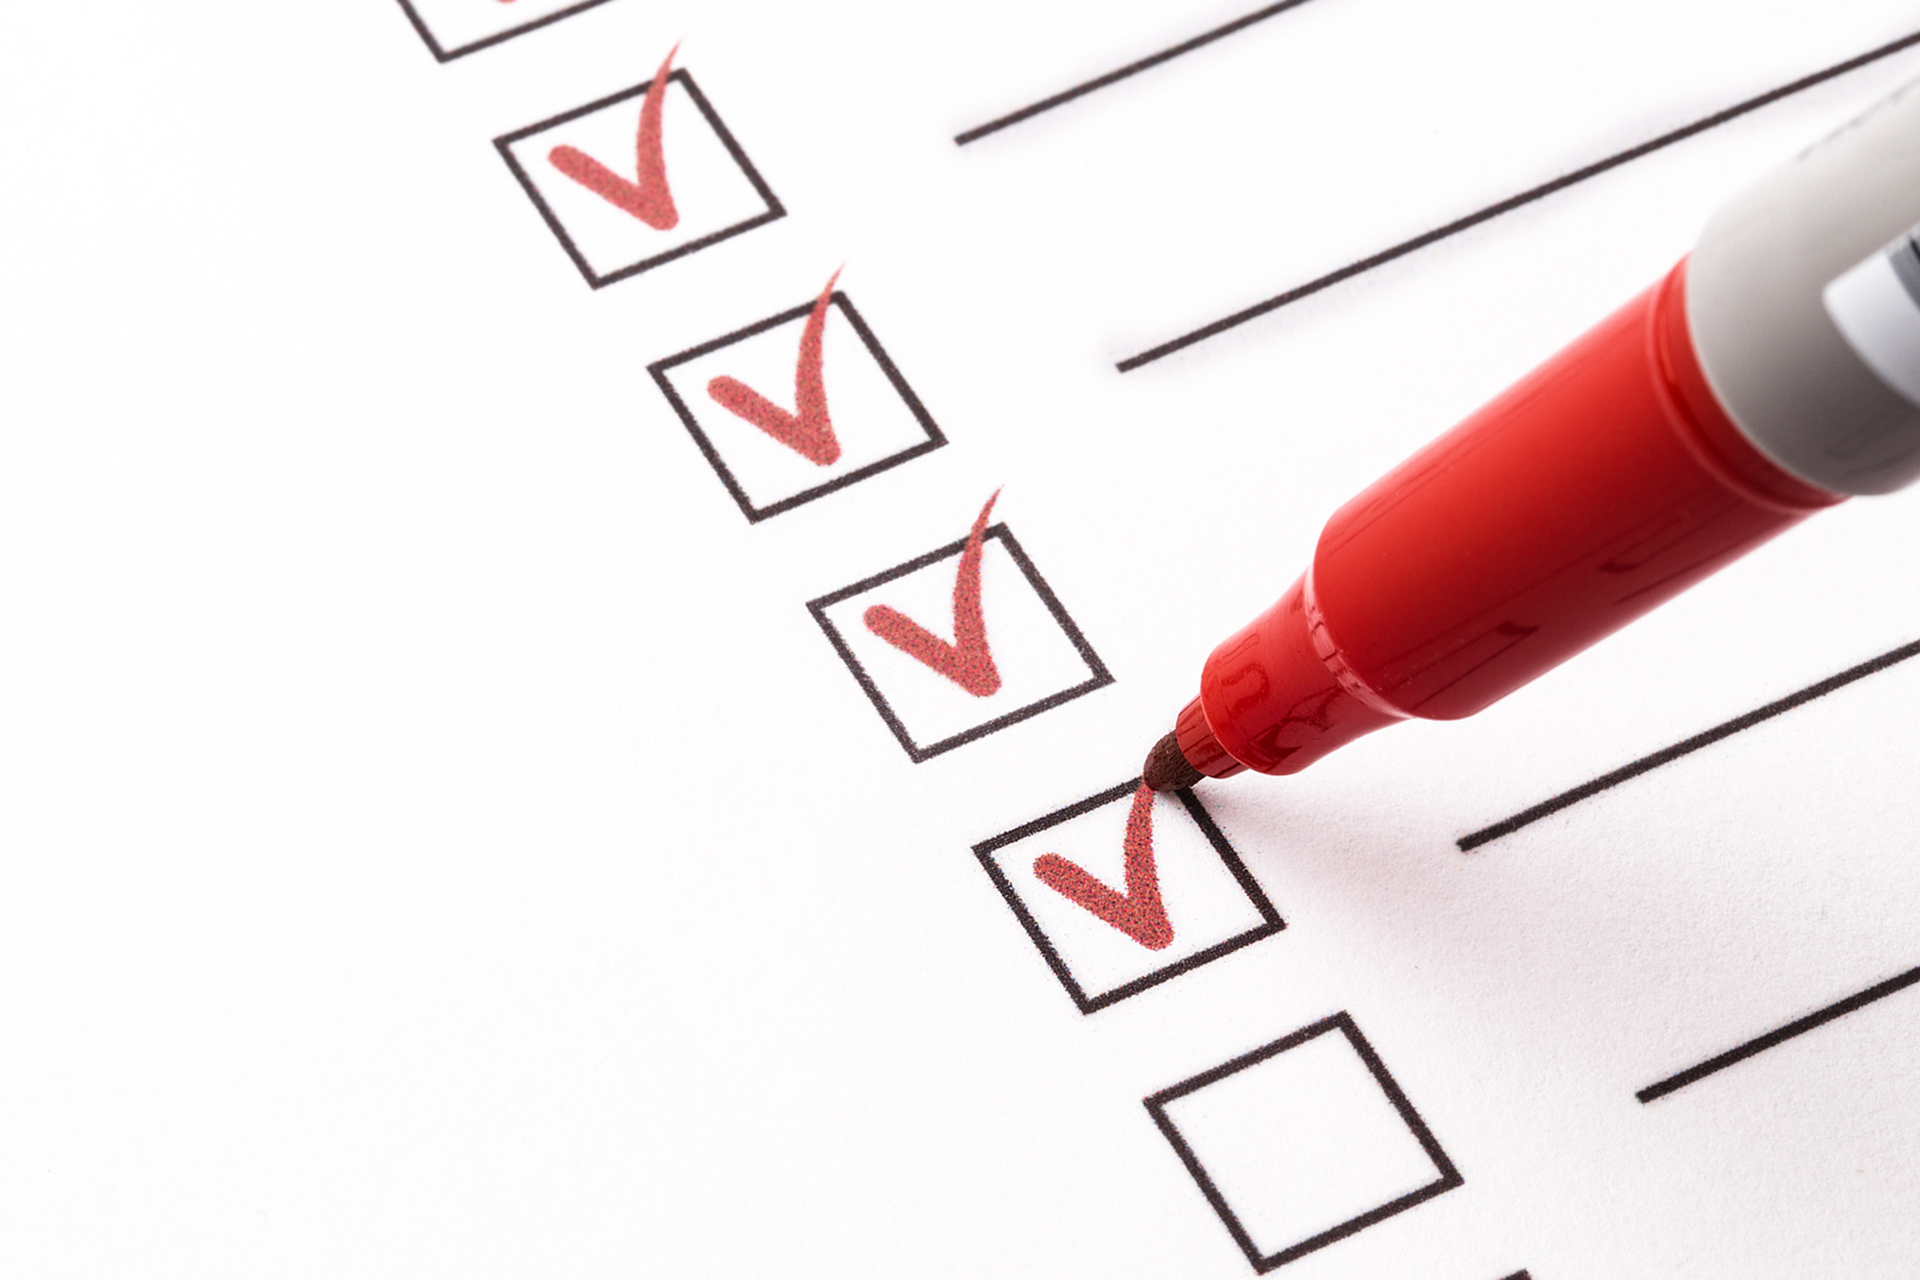 On Again, Off Again: Your Moving Utilities Checklist